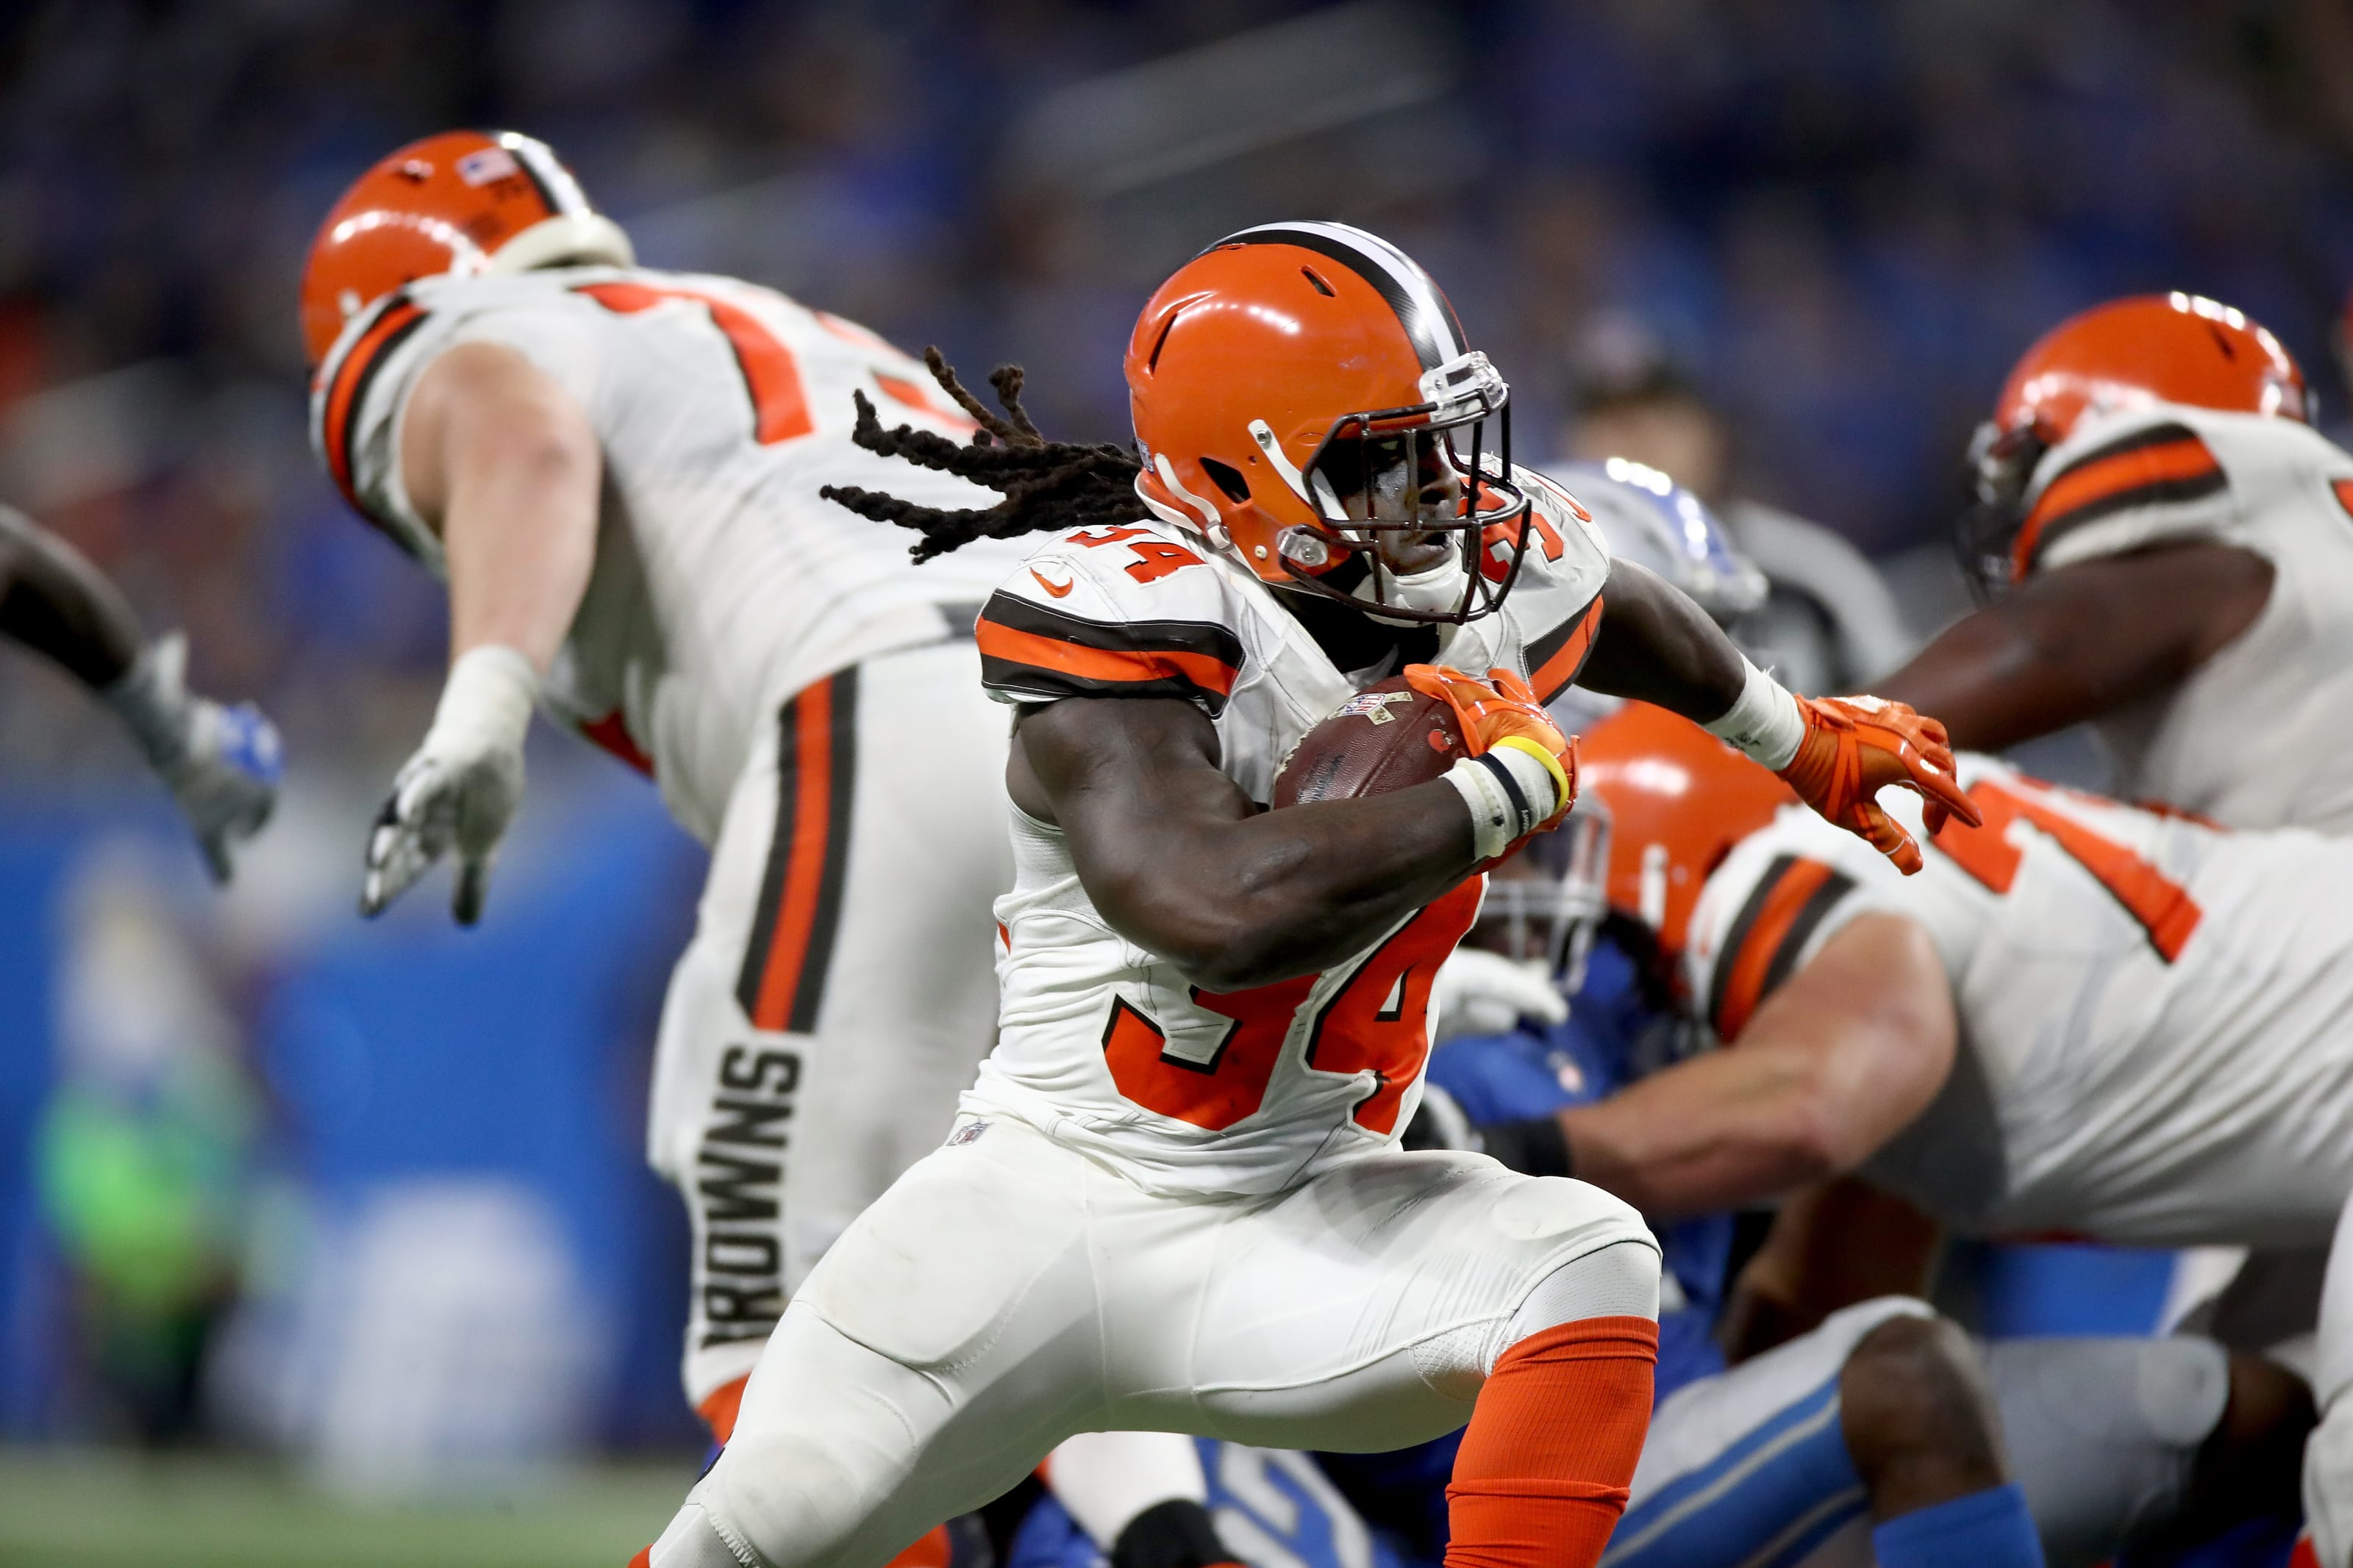 Isaiah Crowell, Cleveland Browns